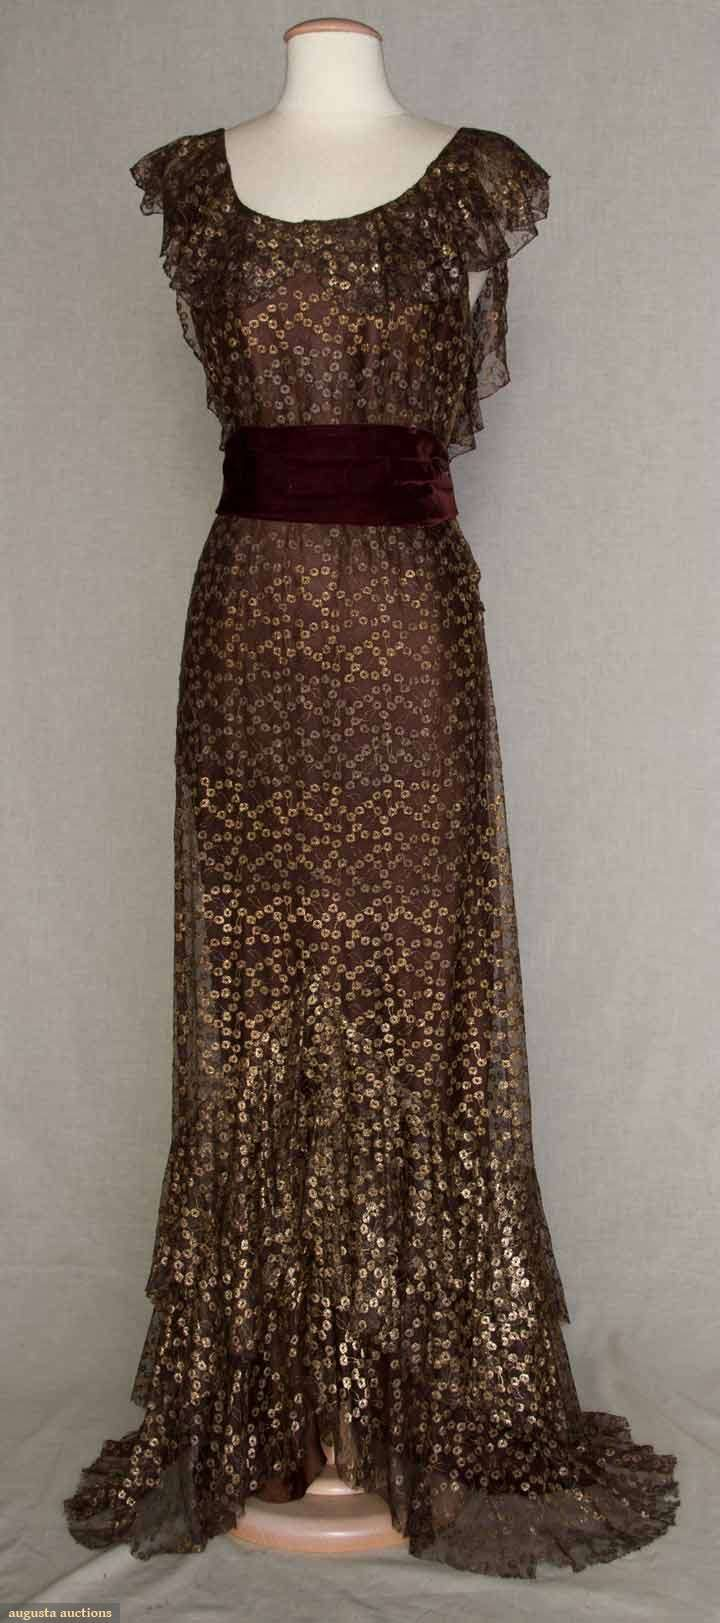 Evening Gown 1934 American Made Of Satin And Velvet Why